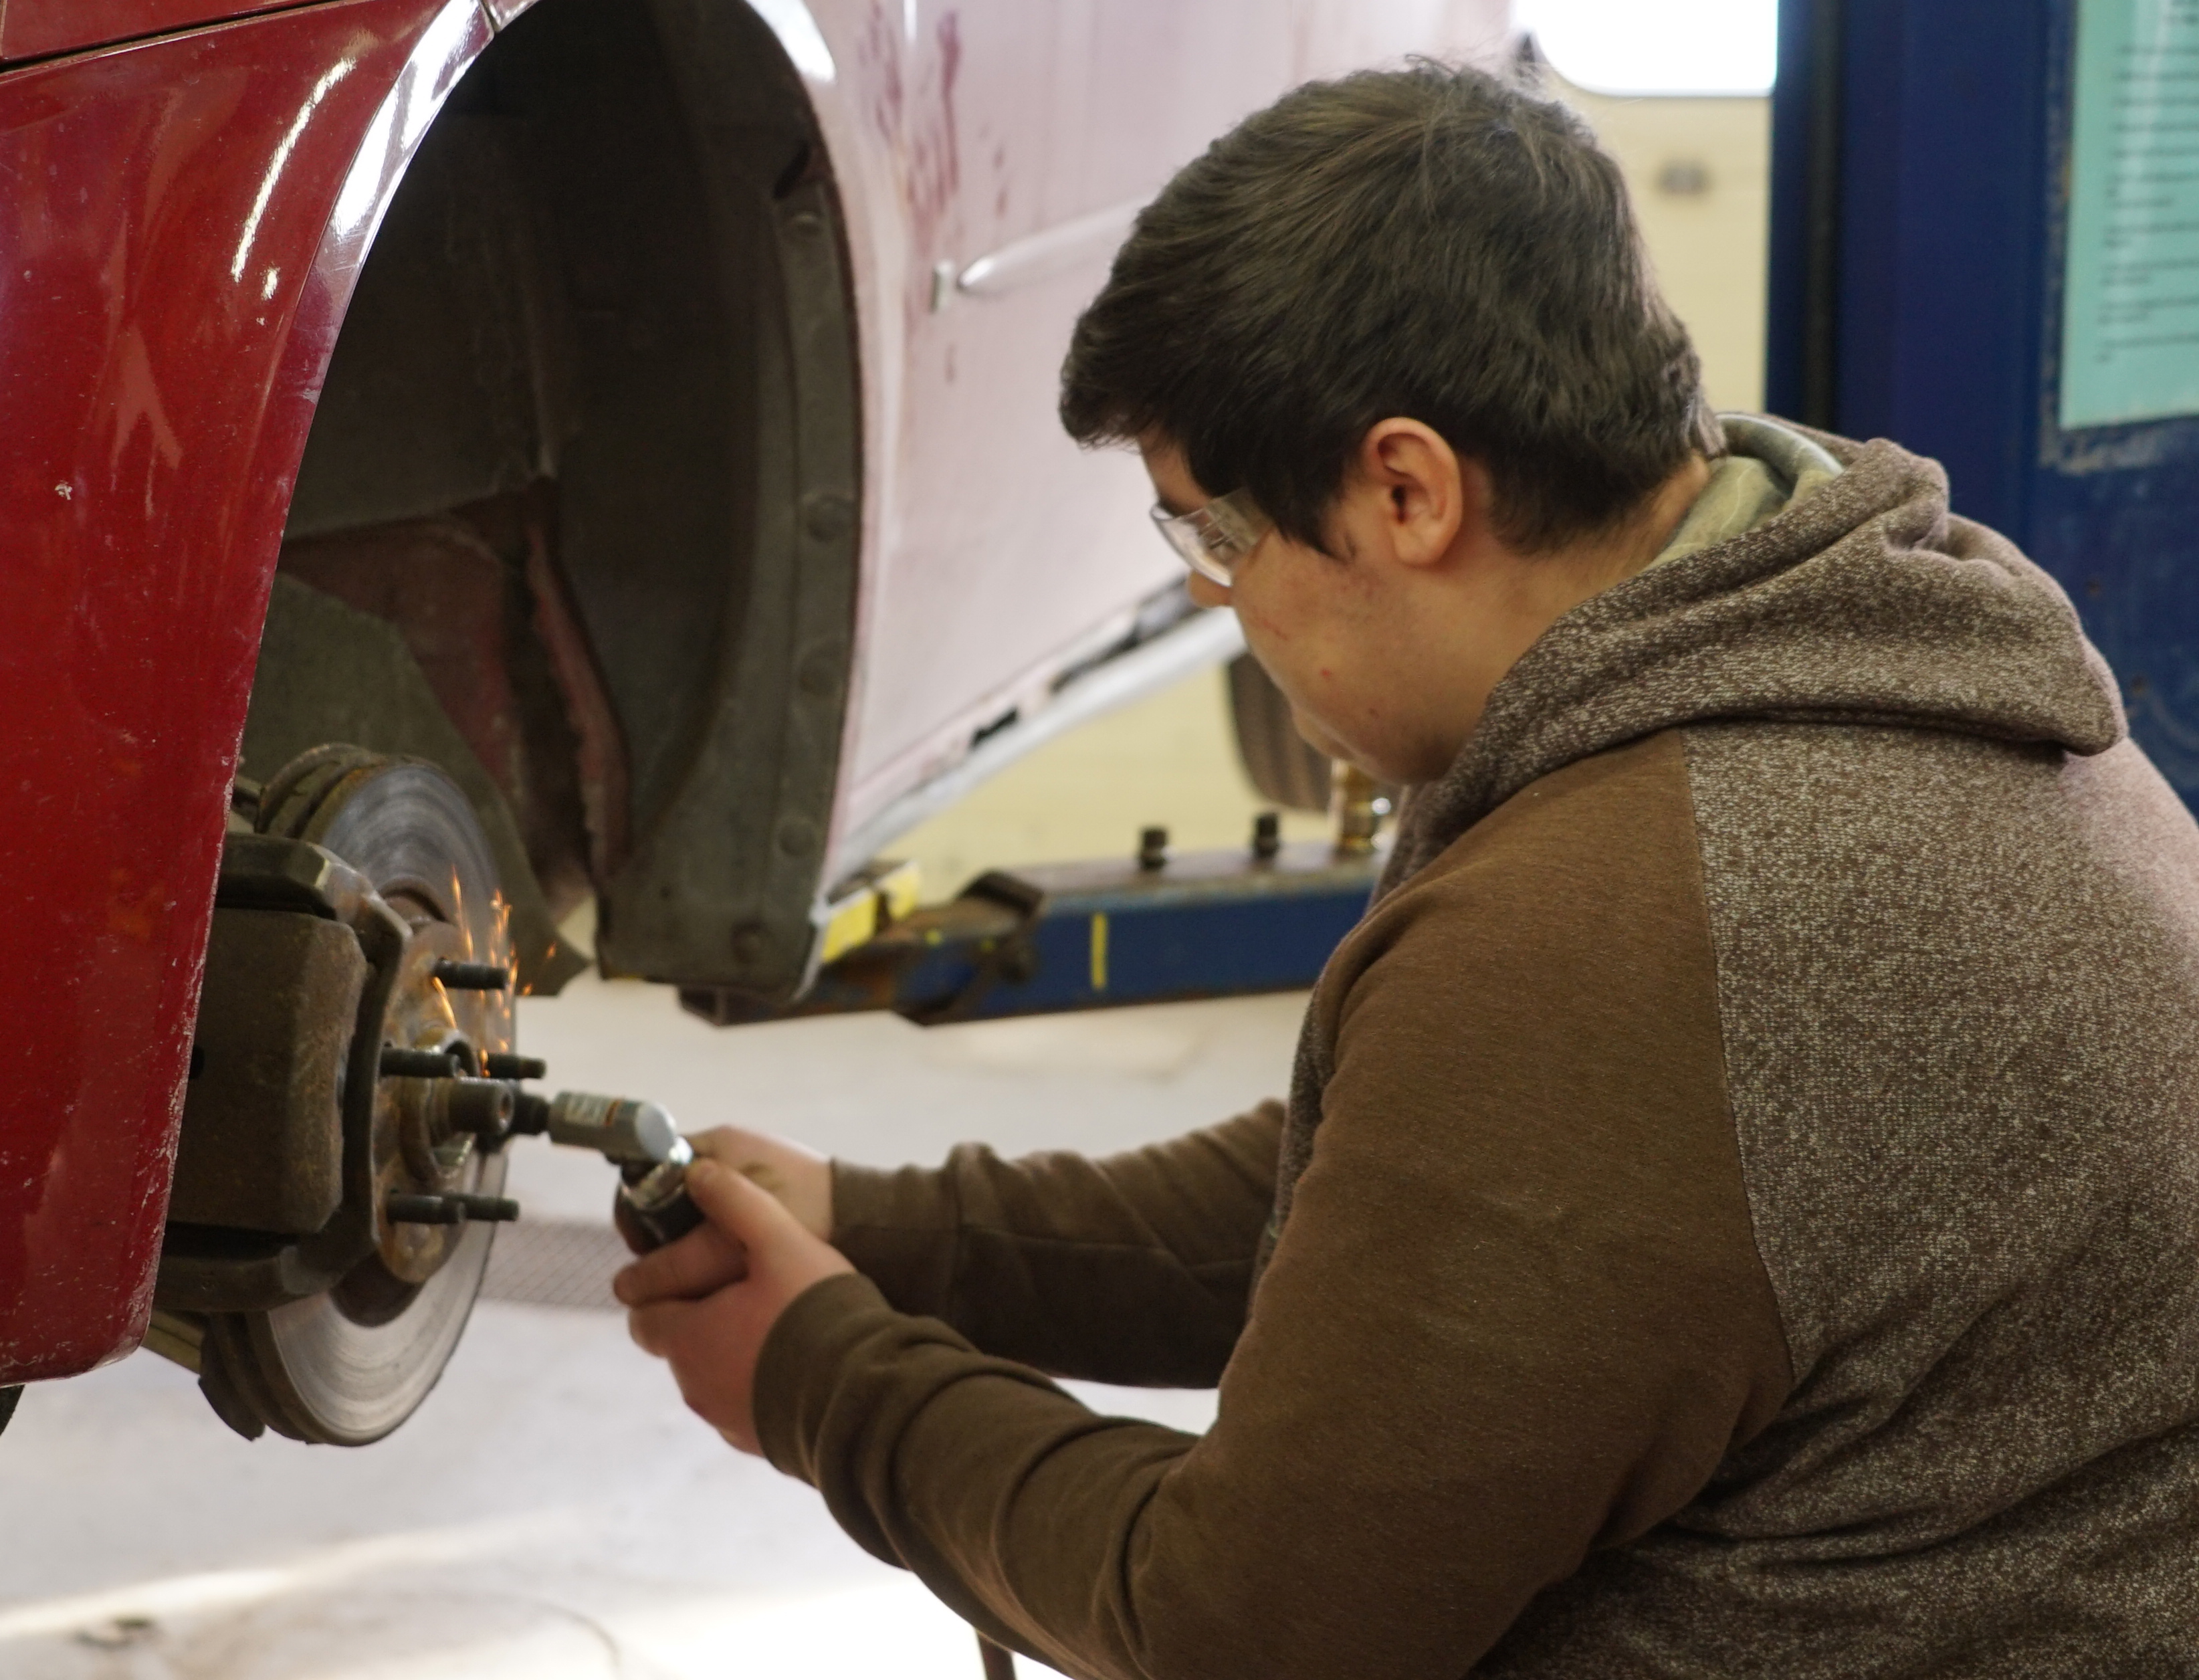 student works on car's brakes